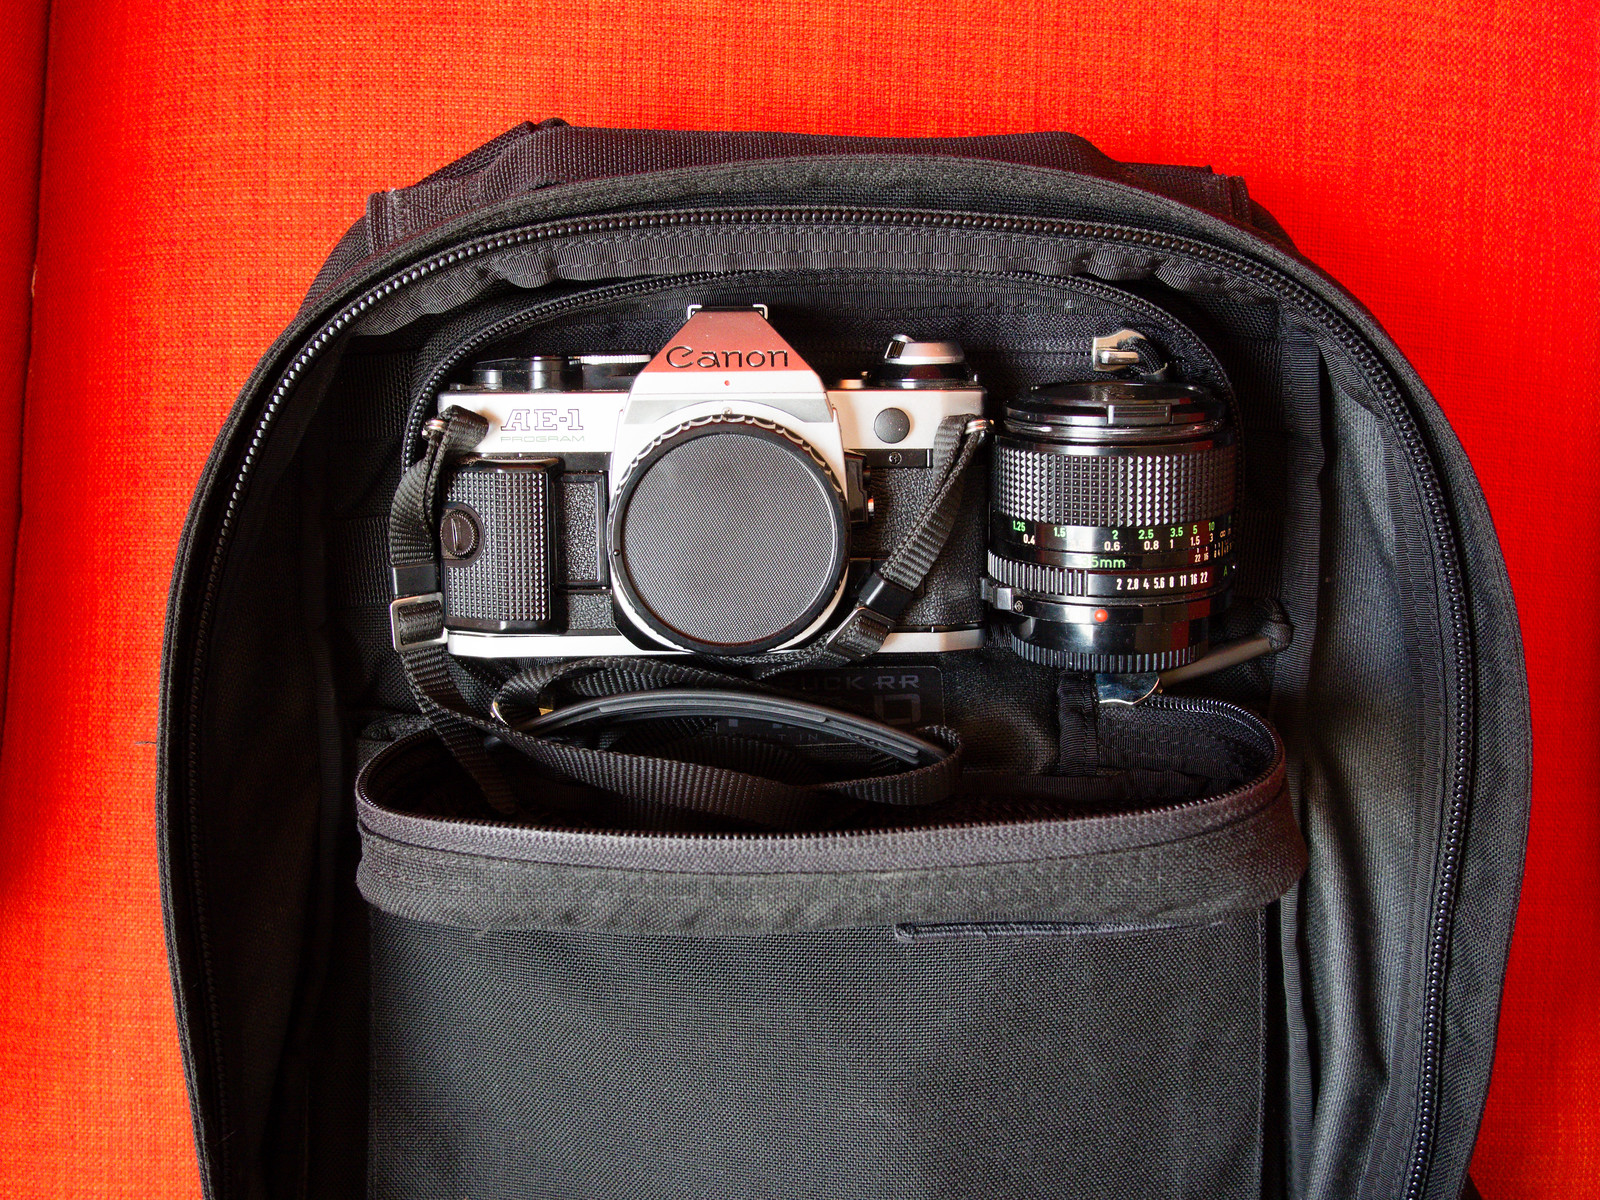 Goruck RR Field Pocket with Canon AE-1 Program and Canon FDn 35mm f/2.0 lens